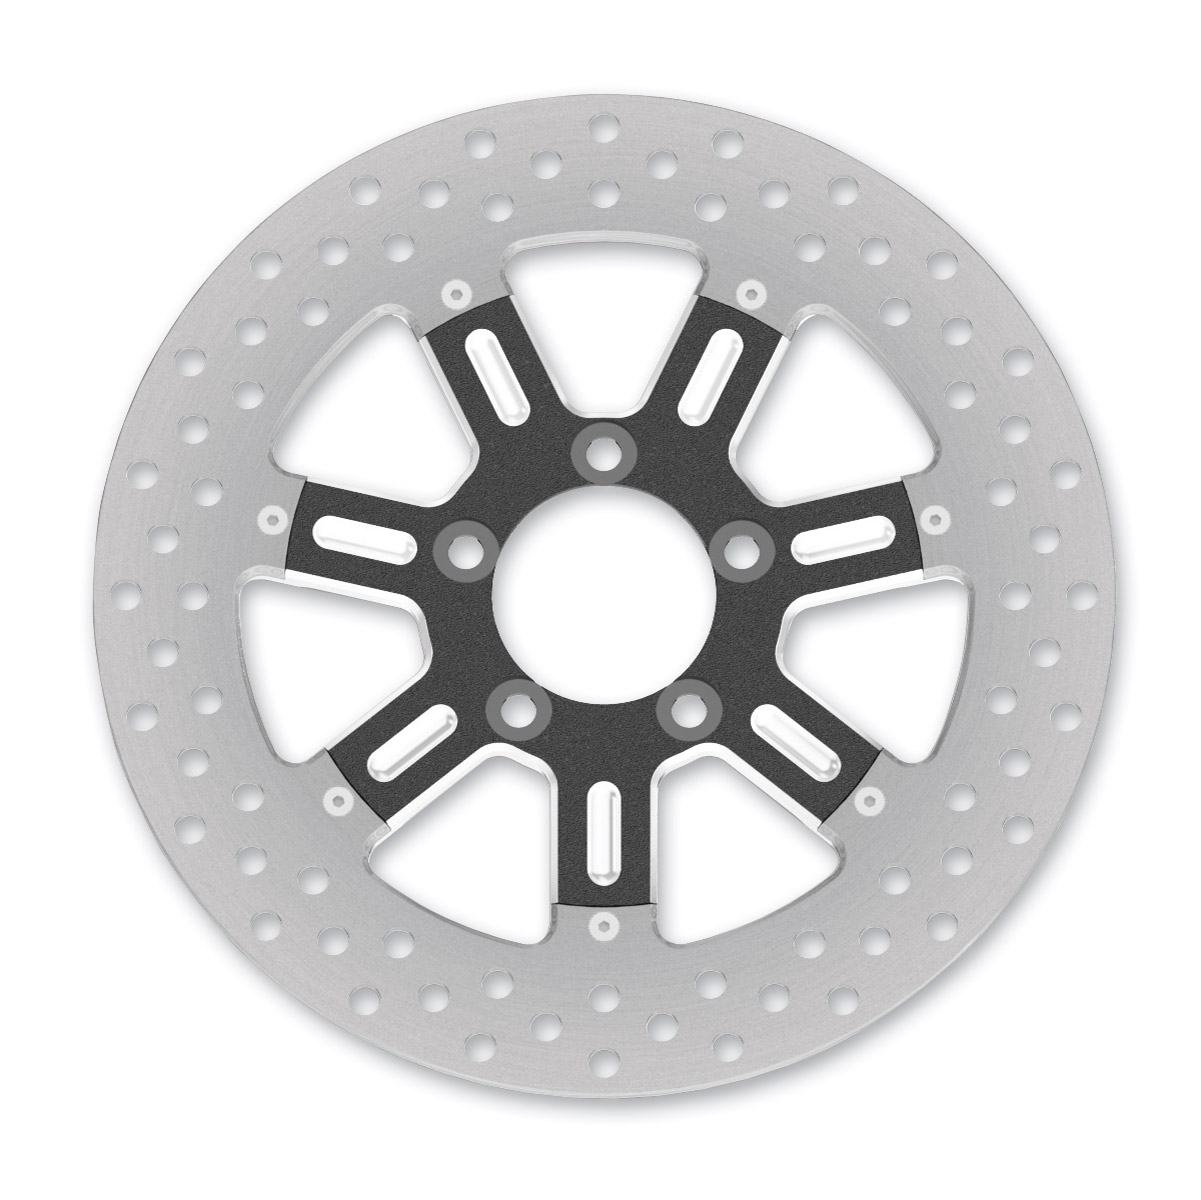 Roland Sands Design Del Mar Contrast Cut Ops Two-Piece Front Brake Rotor, 11.5